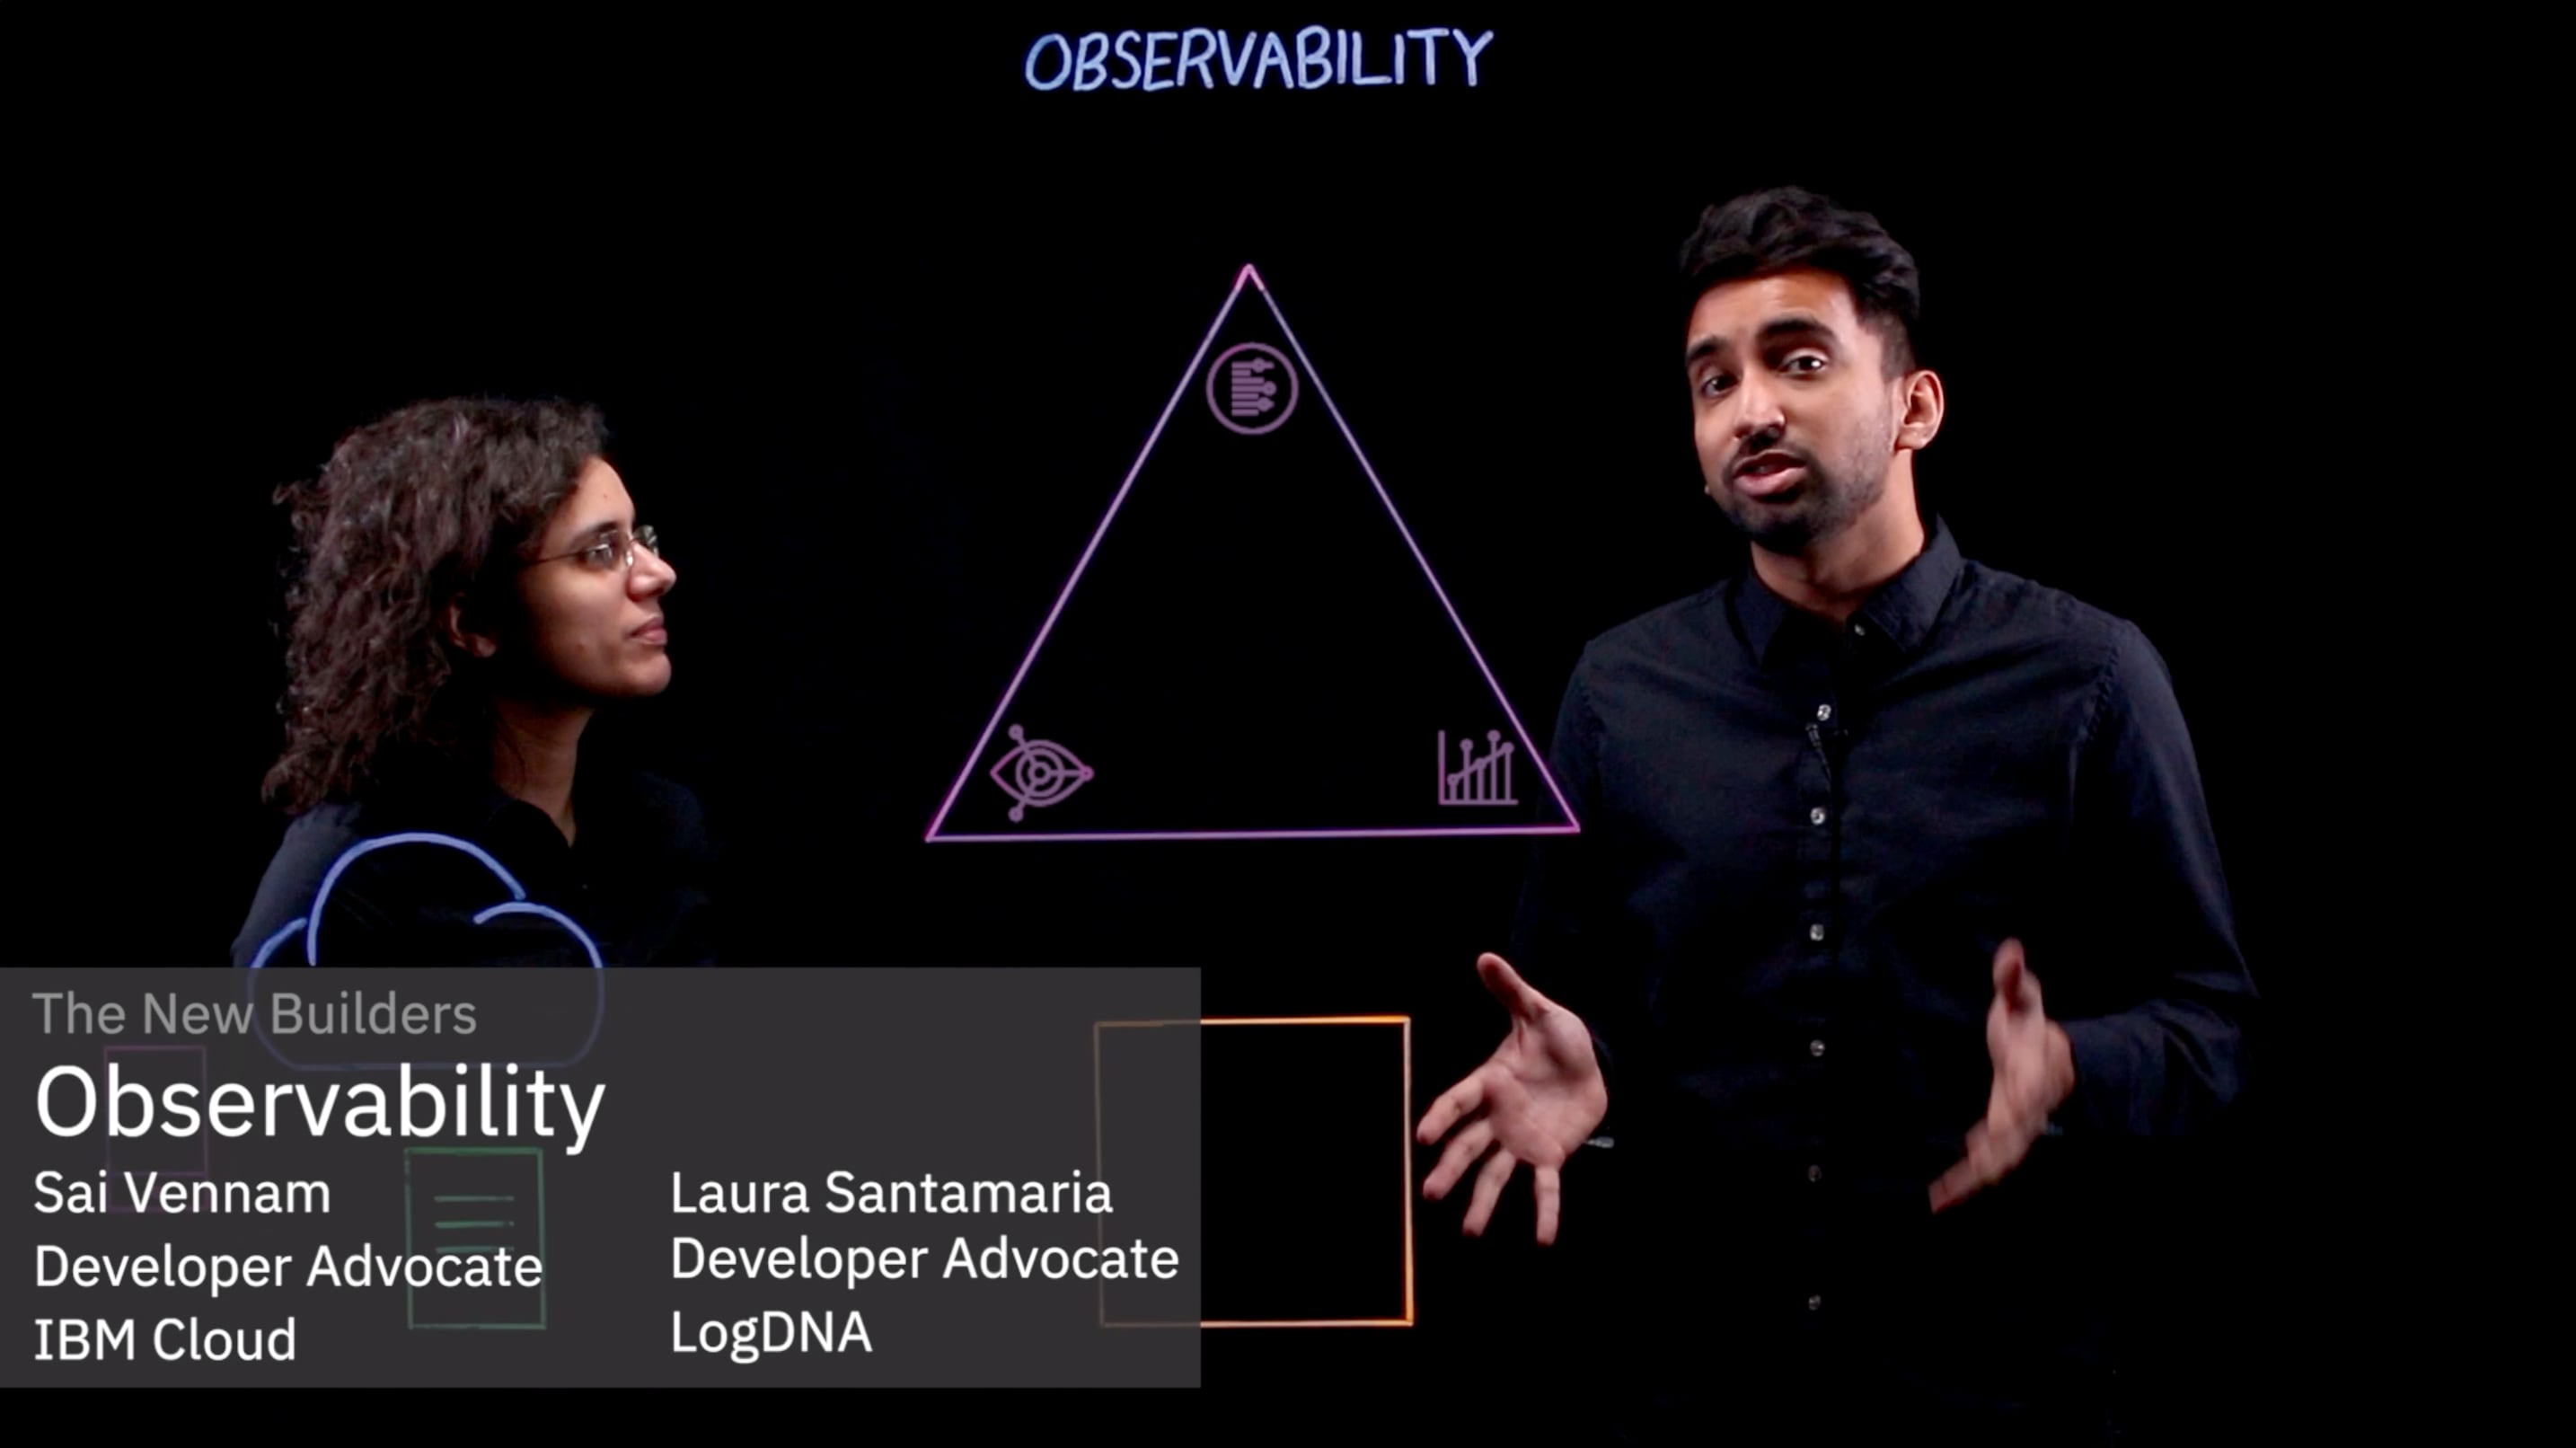 What is observability?